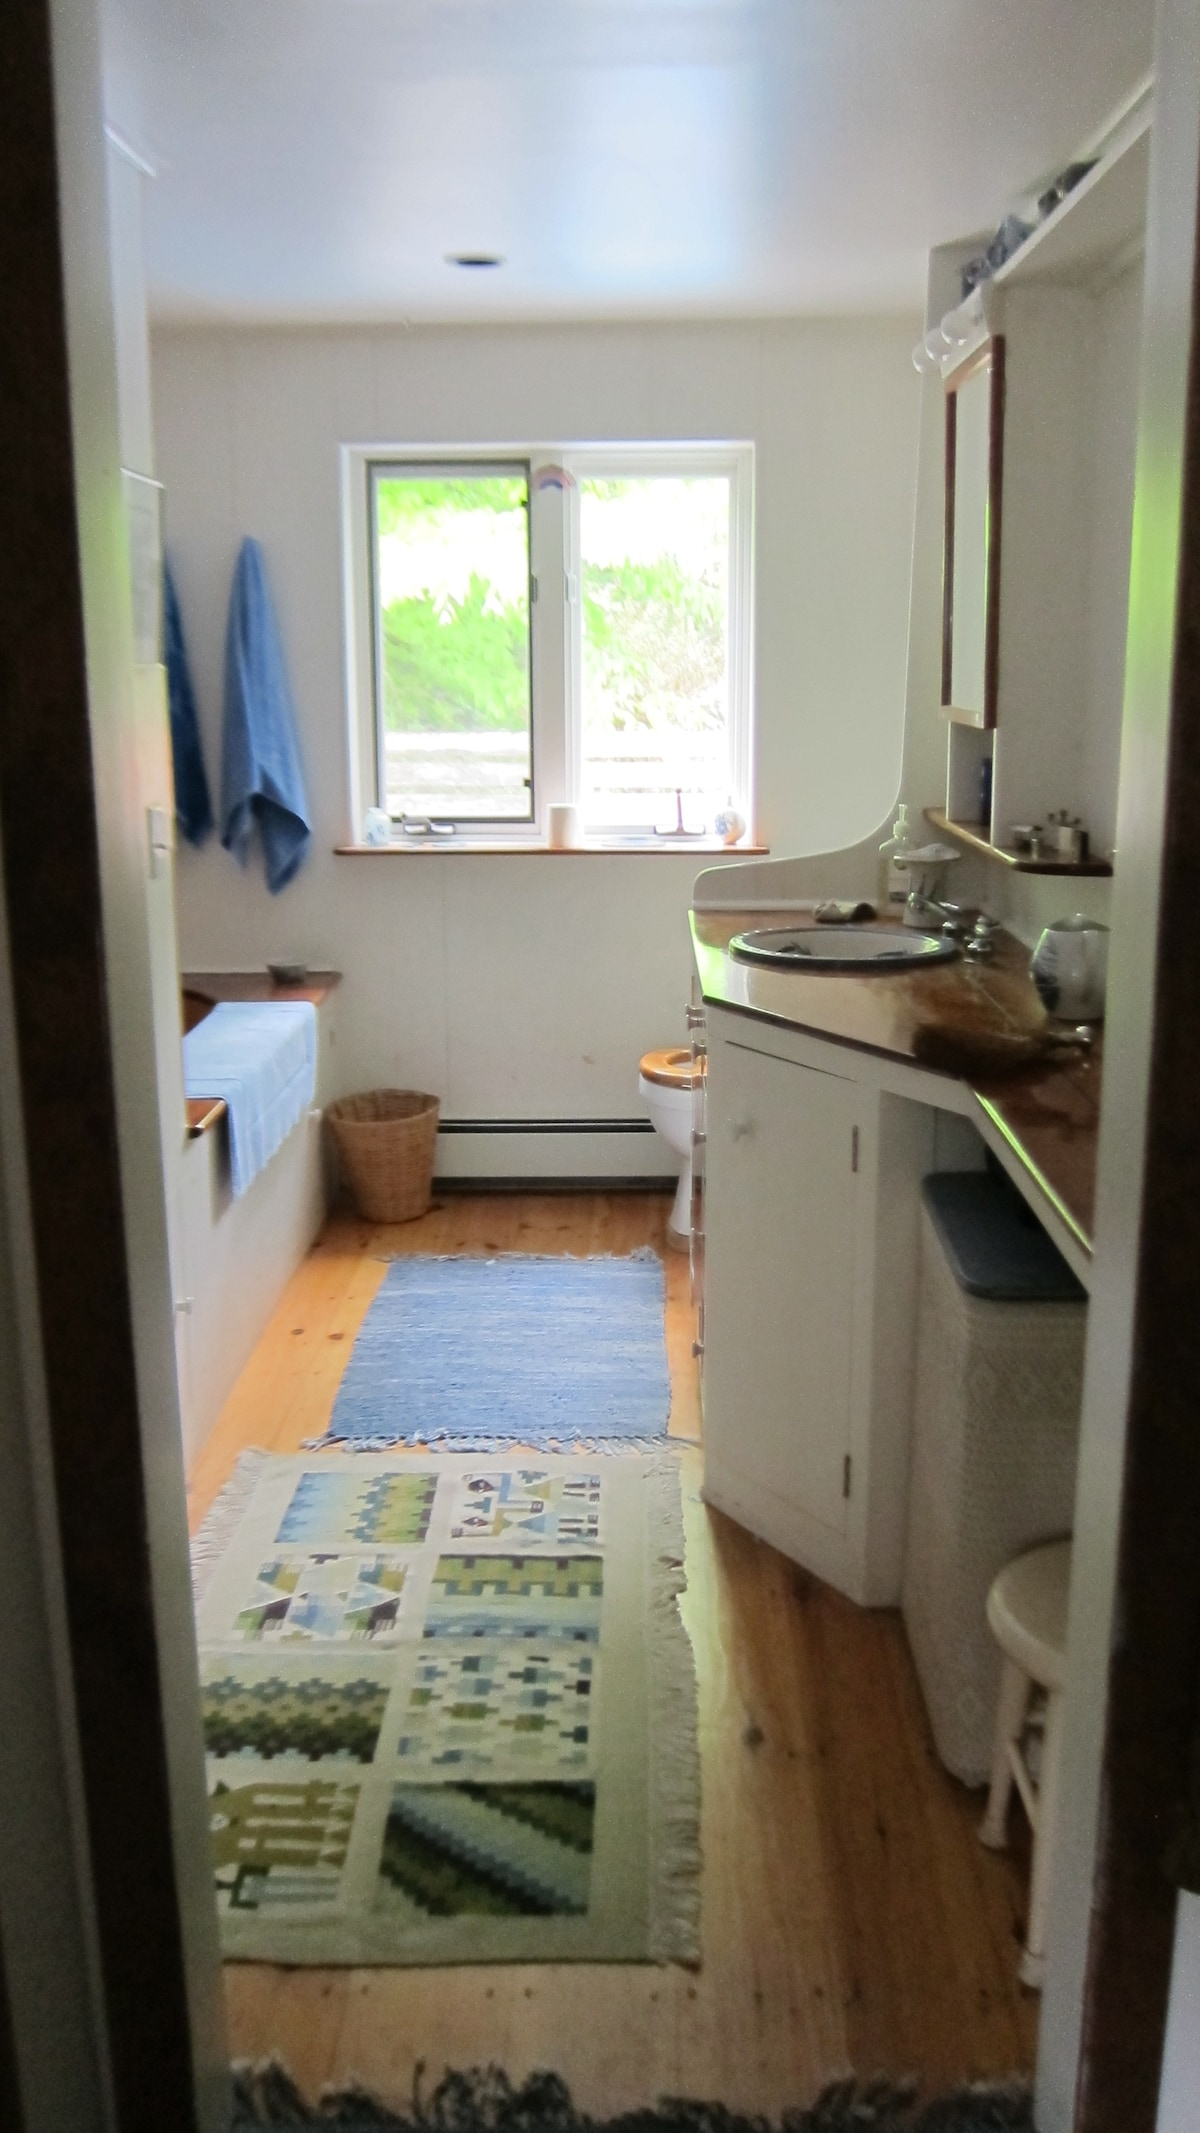 bathroom constructed by a boat builder